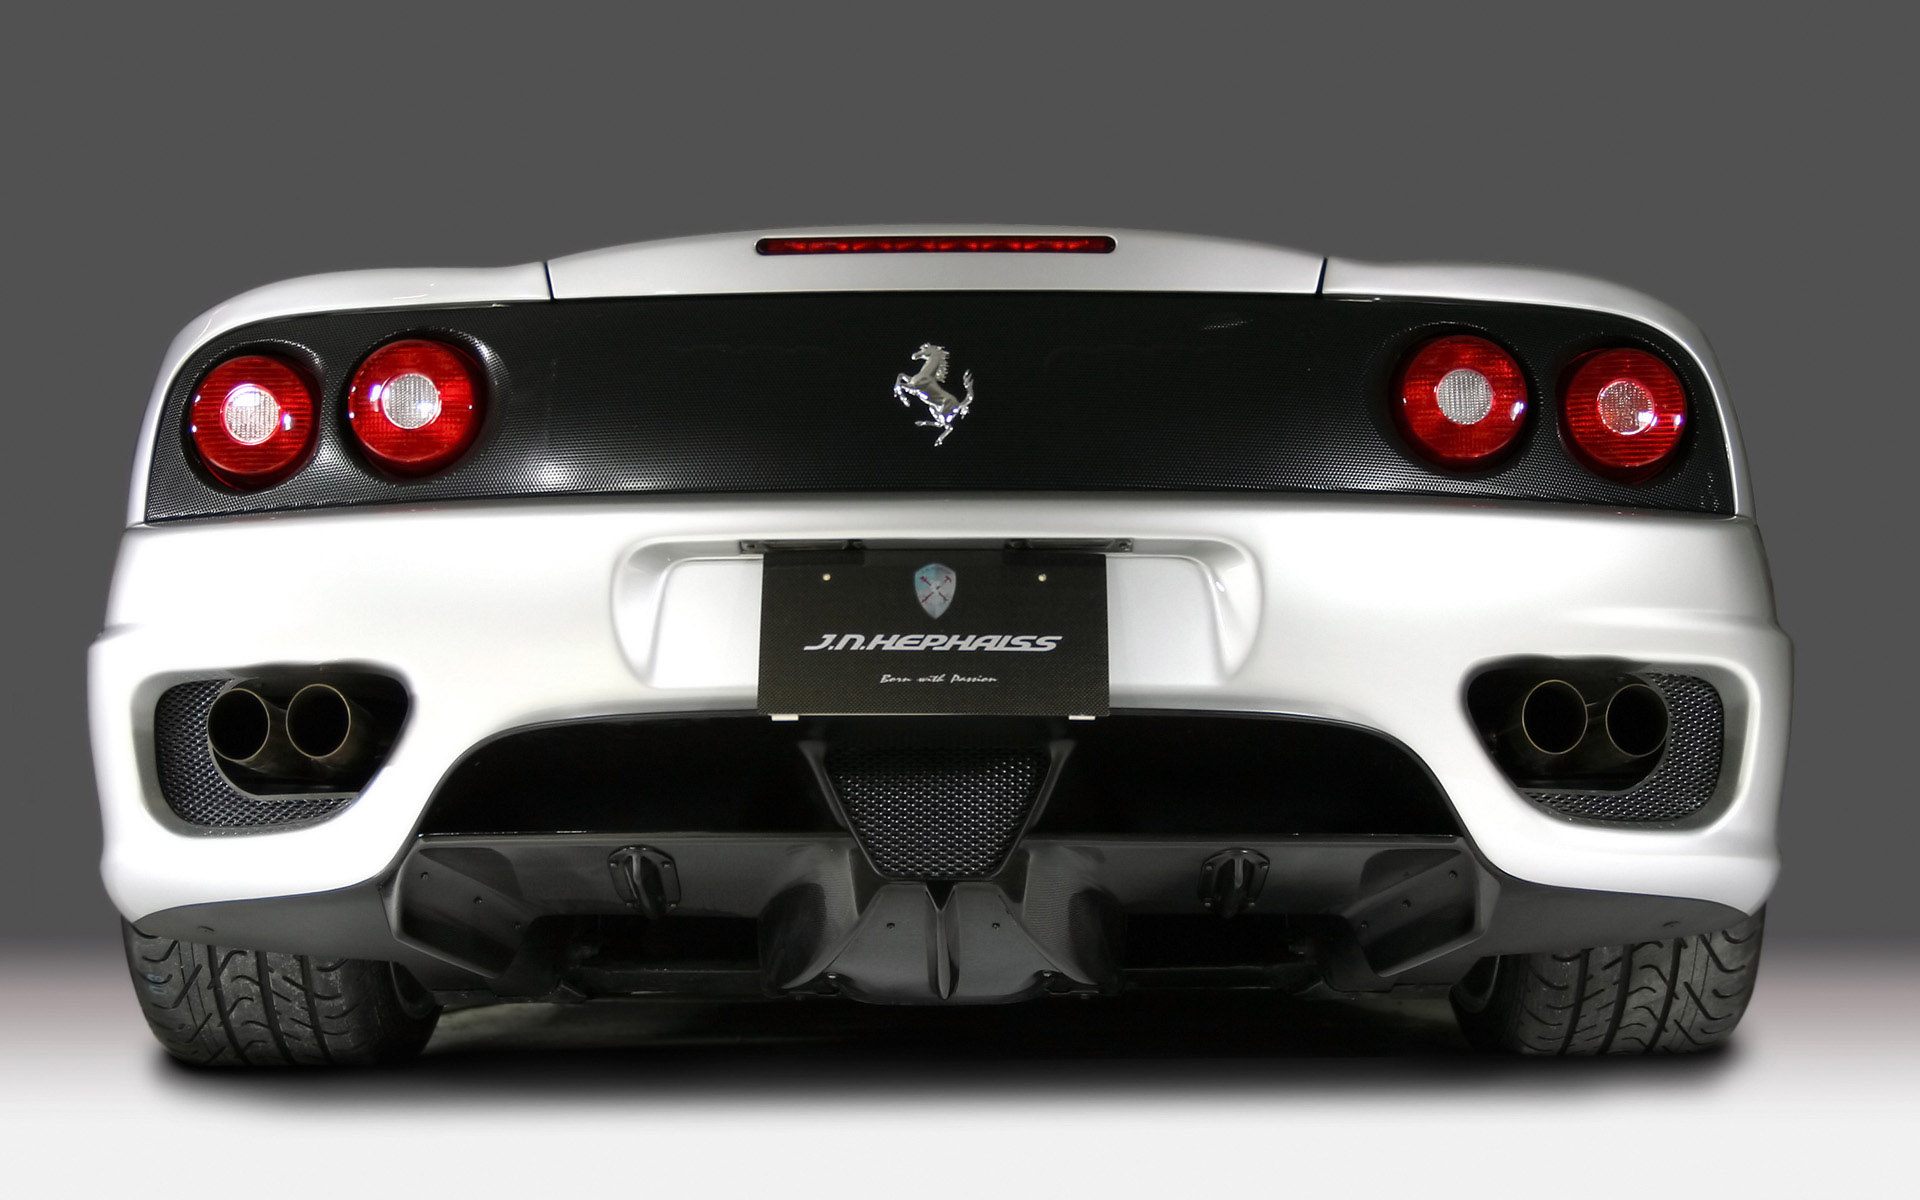 Wallpaper ferrari breedbeeld